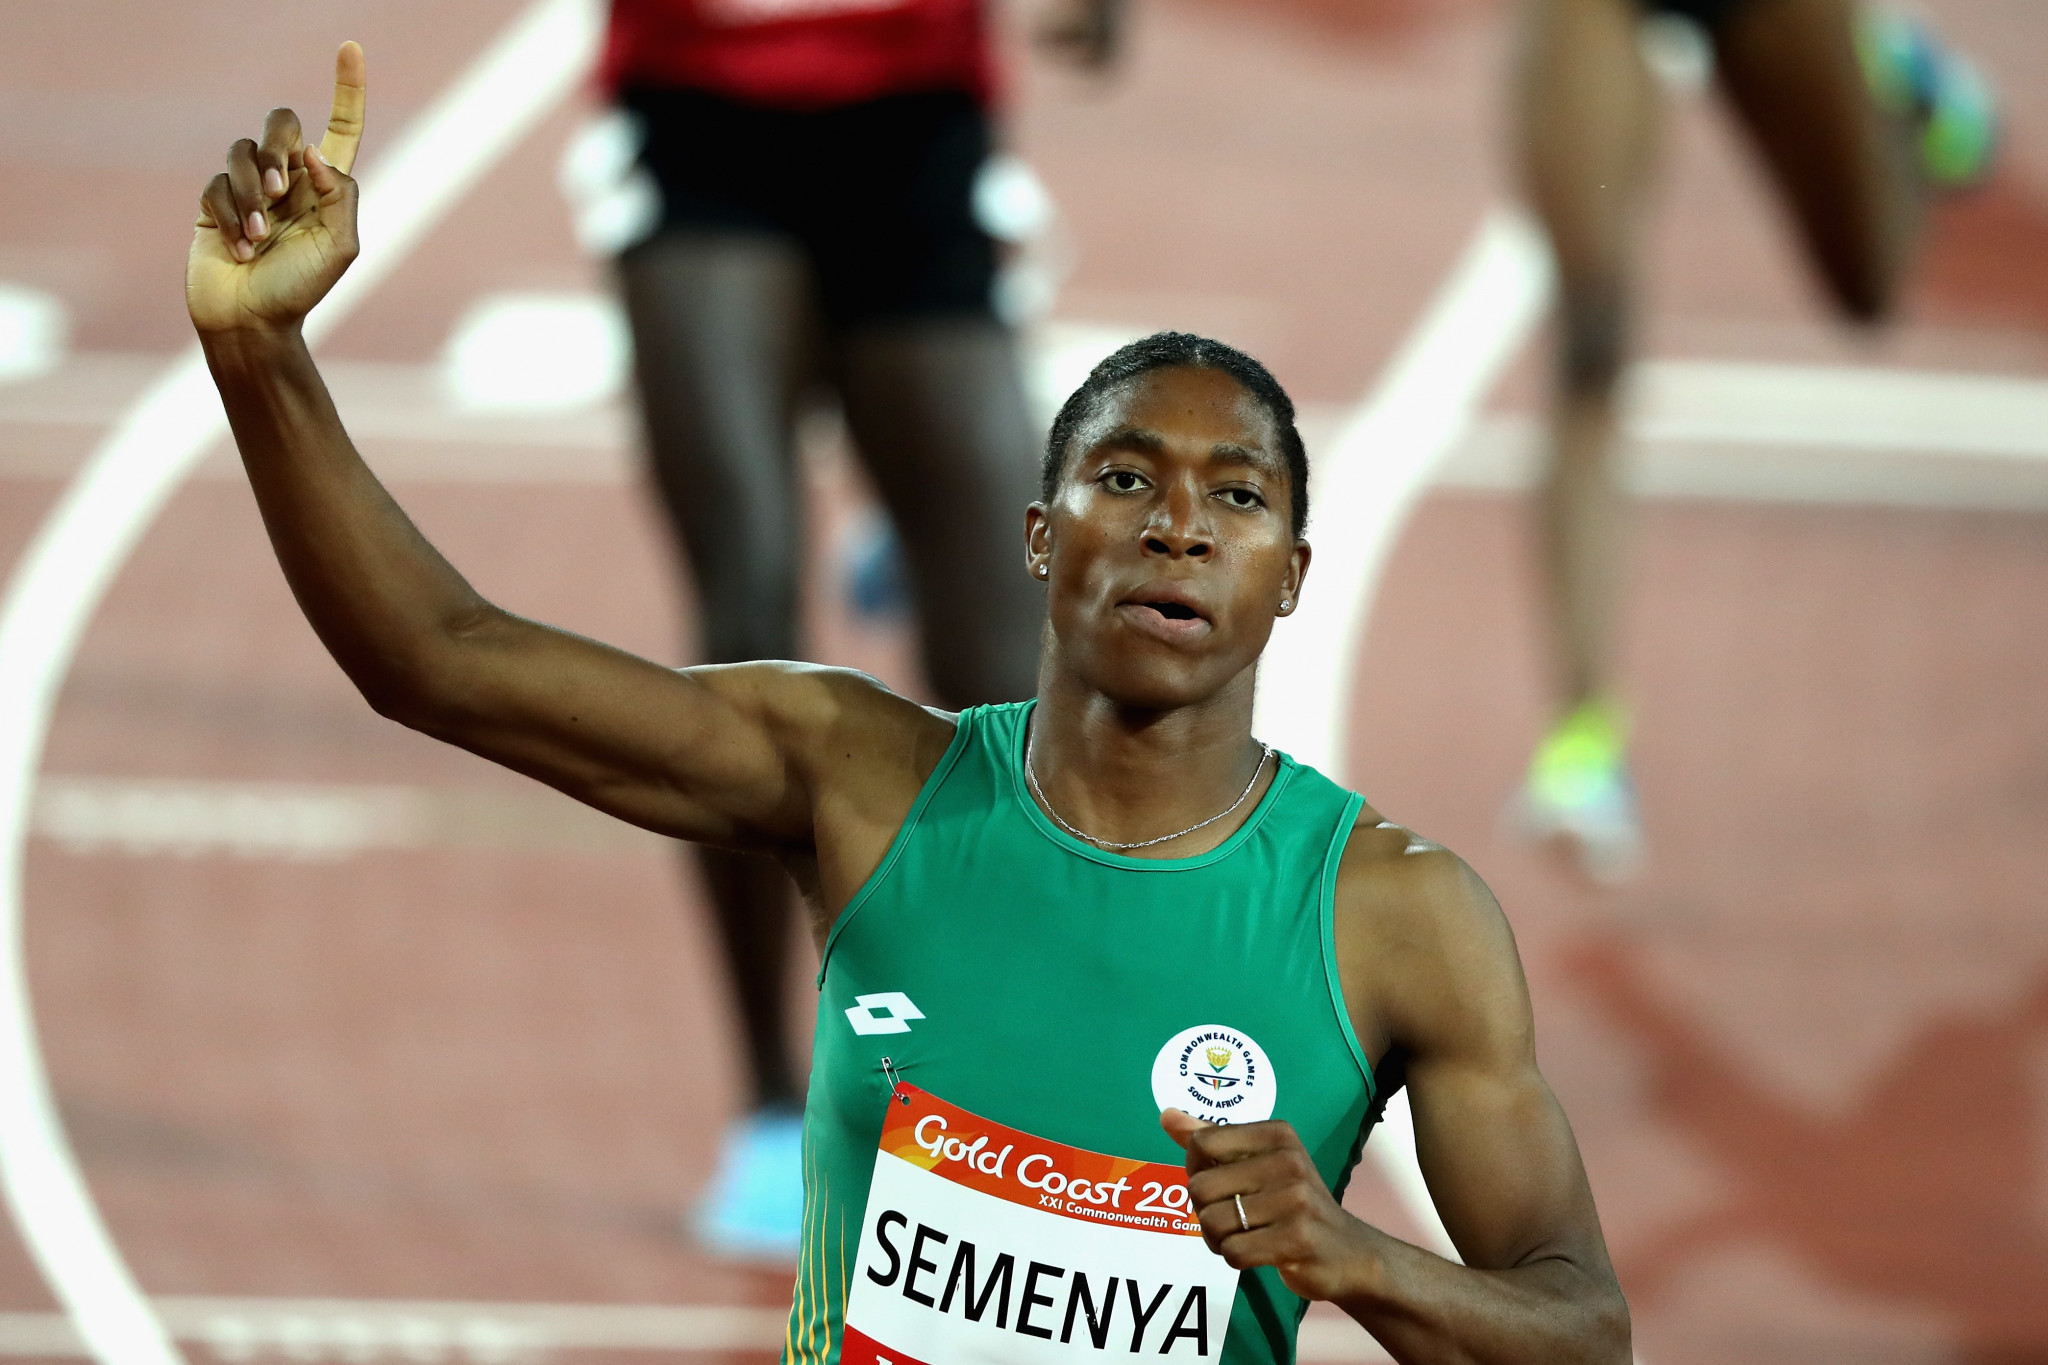 Caster Semenya won gold in the 800m and 1,500m events at this month's Commonwealth Games in Gold Coast ©Getty Images